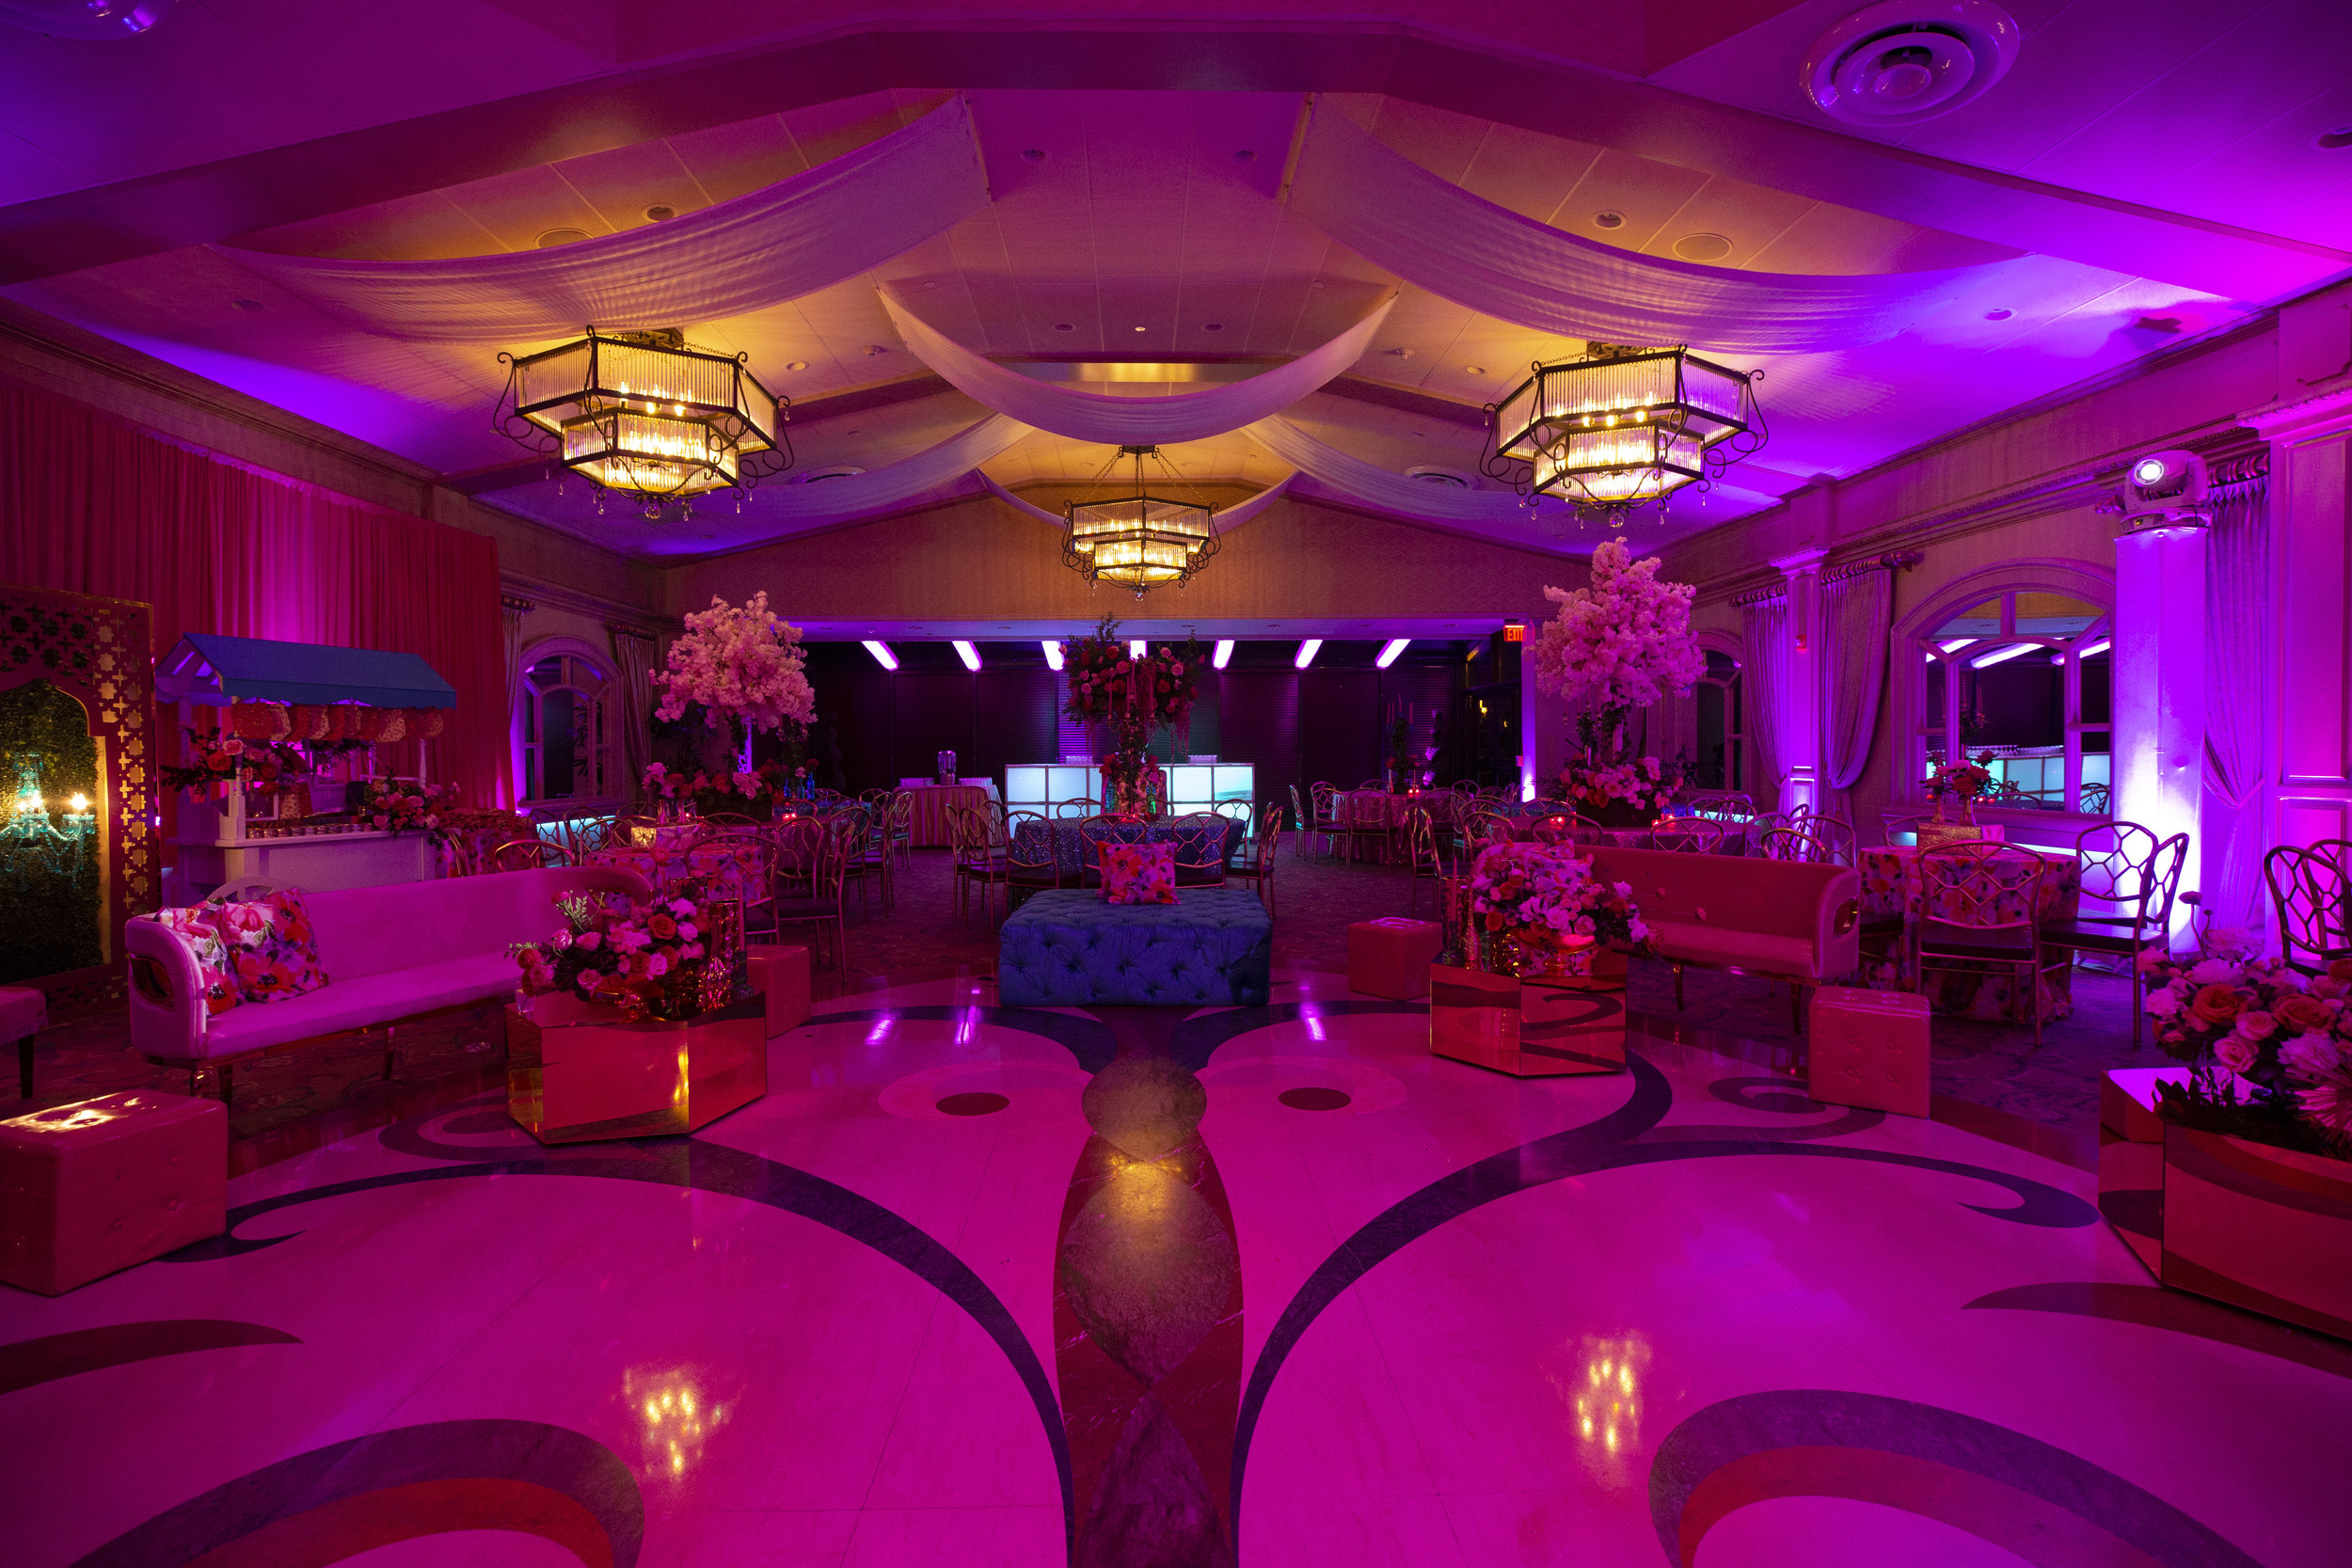 INDIAN WEDDING SANGEET VENUE 3.JPG